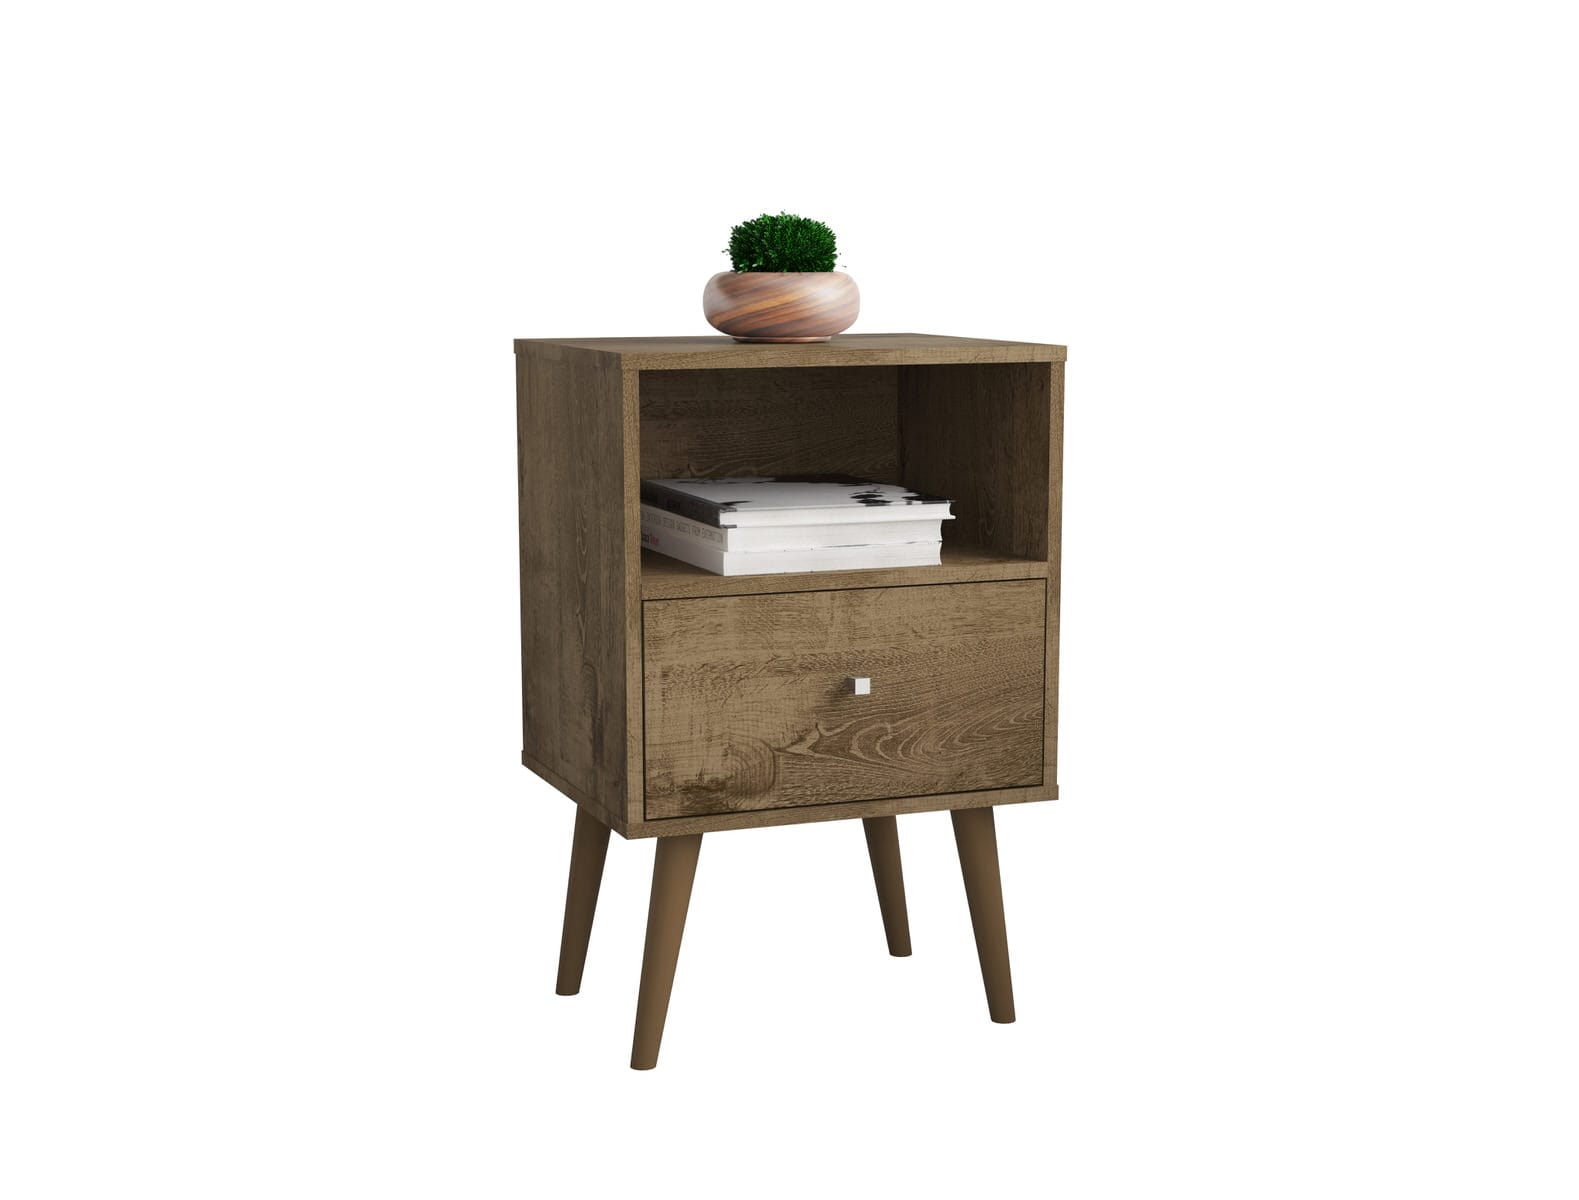 Liberty Mid Century Modern Rustic Brown Nightstand 1 0 W 1 Cubby Space 1 Drawer By Manhattan Comfort